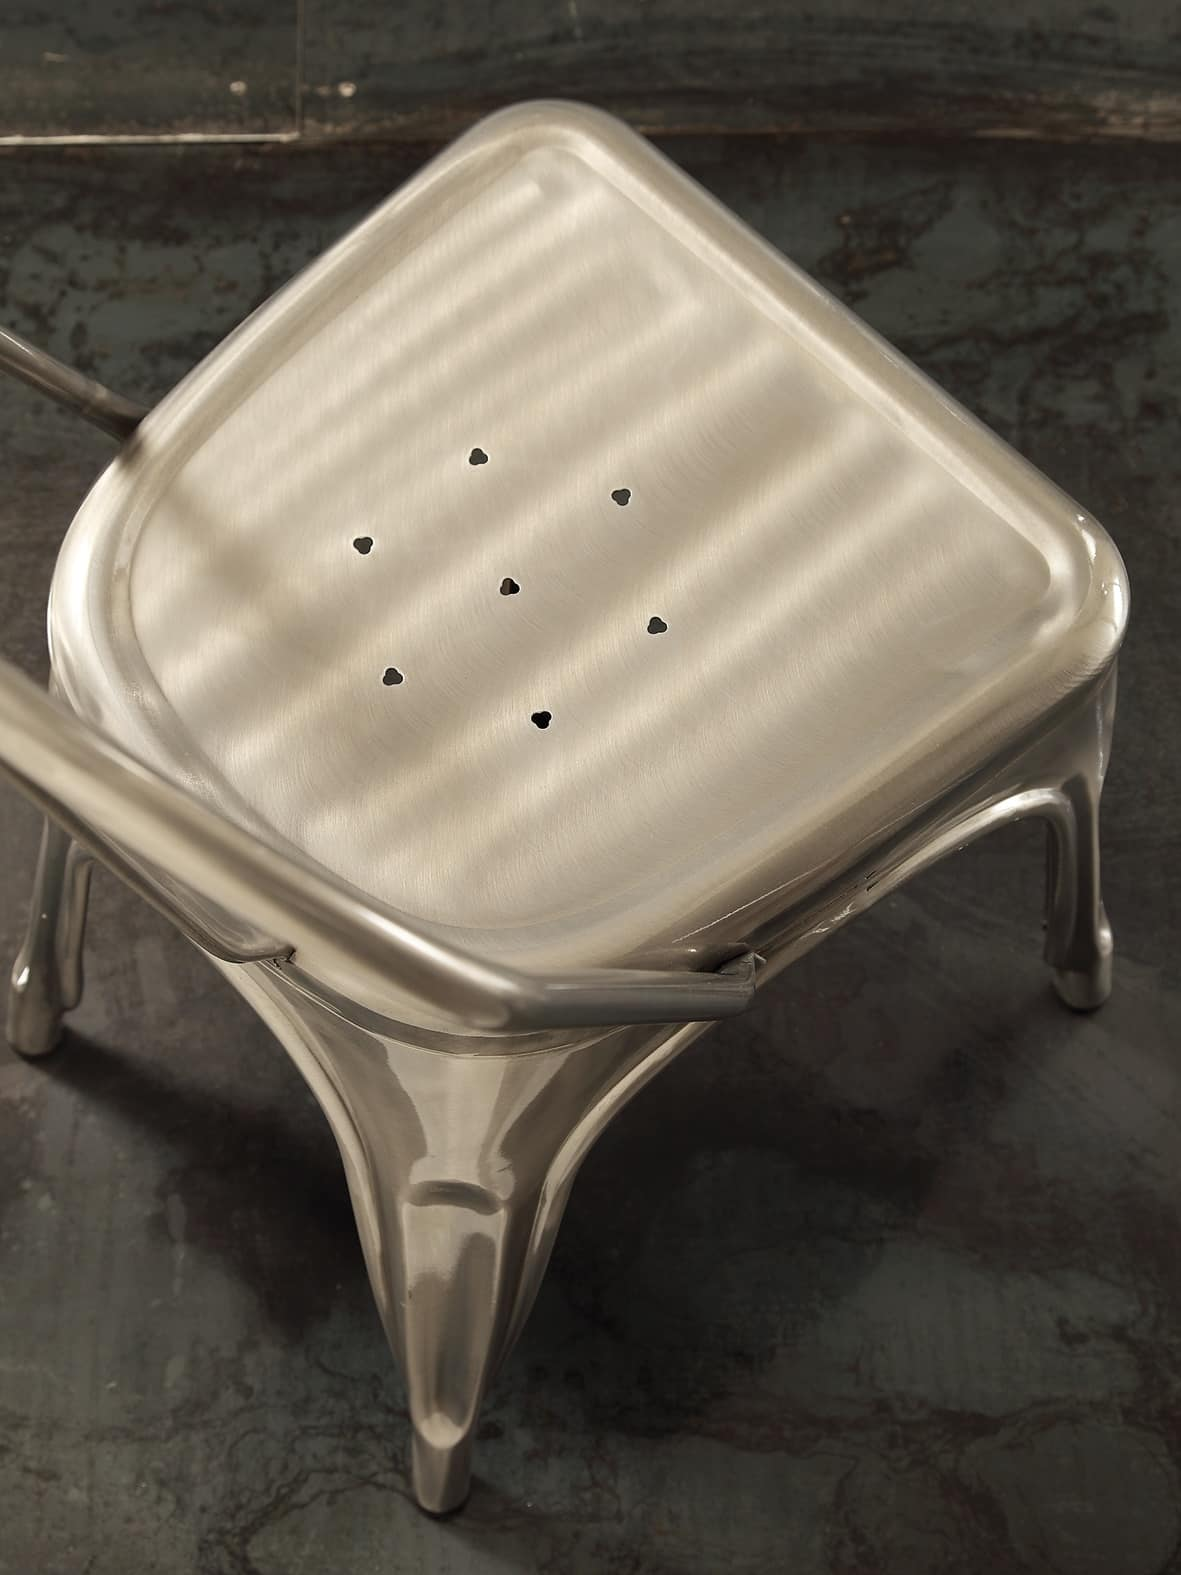 Art. 069 Route 66 chair, Stackable metal chair in vintage style